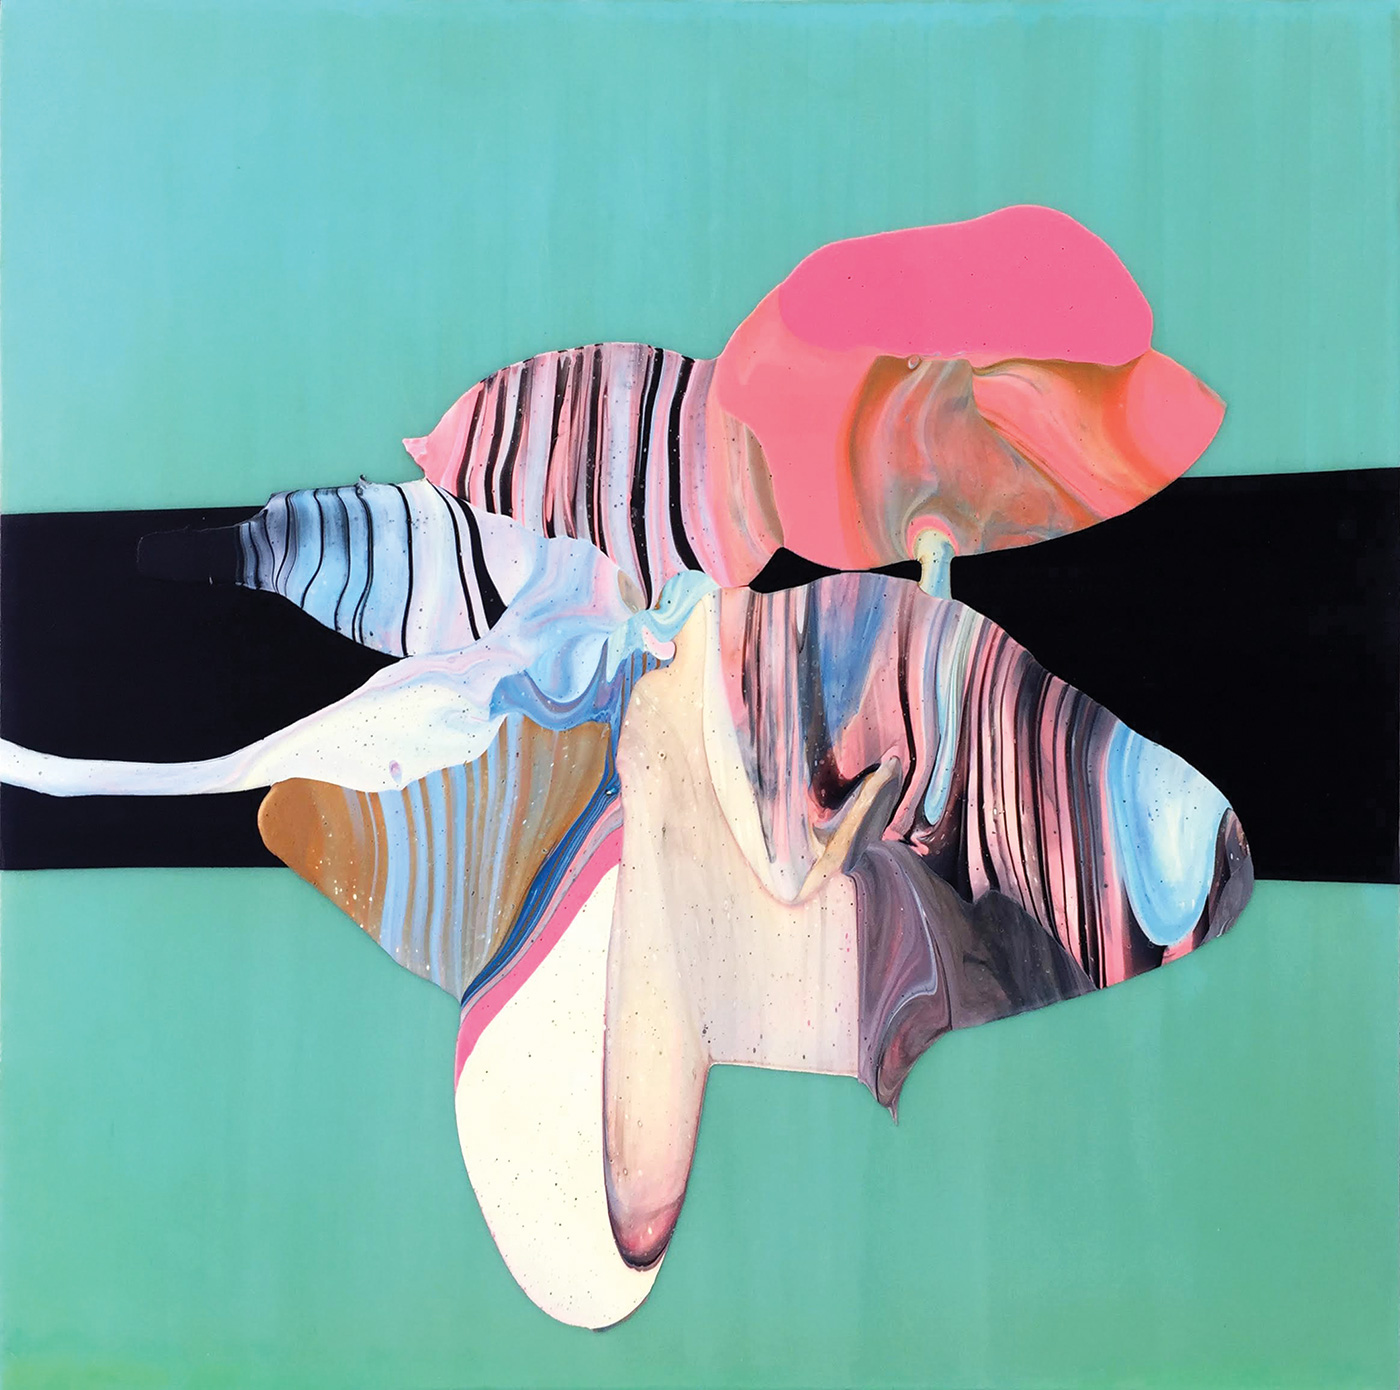 "Marion Lane. Untitled 4, 2015. Acrylic on panel. 24"" x 24""Untitled 4, 2015. Courtesy Launch LA."